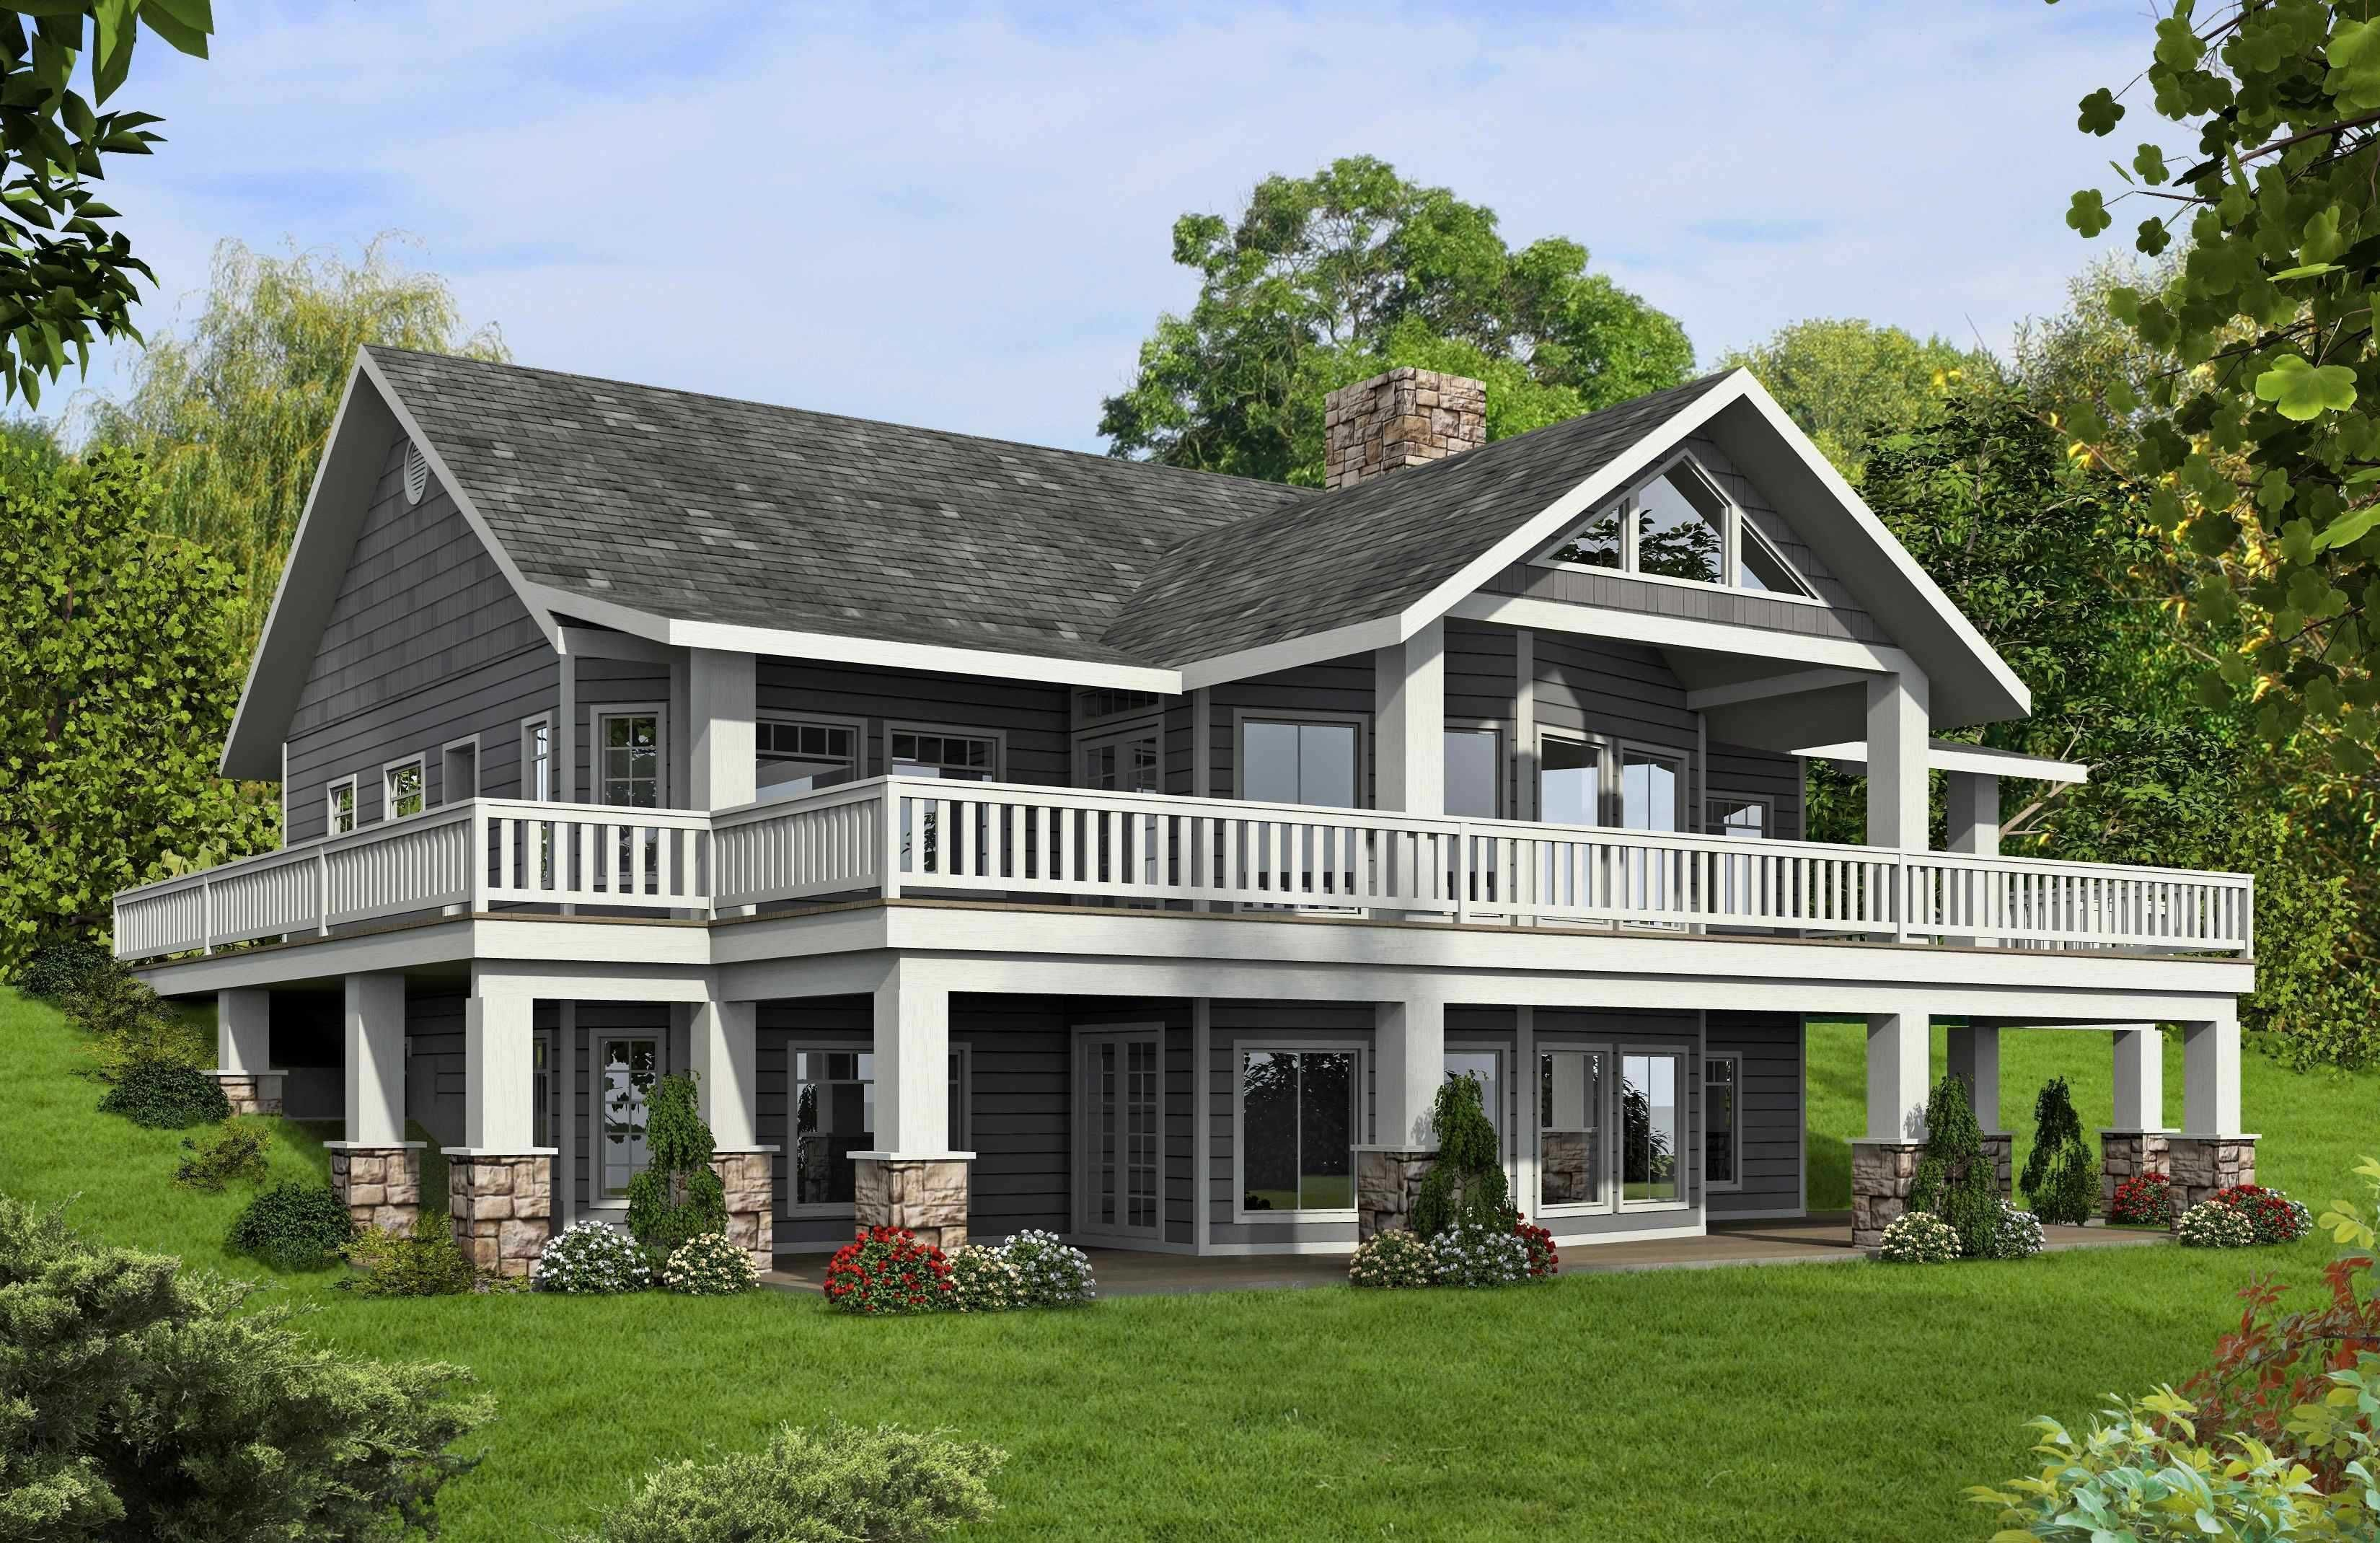 Old fashioned old farmhouse with wrap around porch lovely